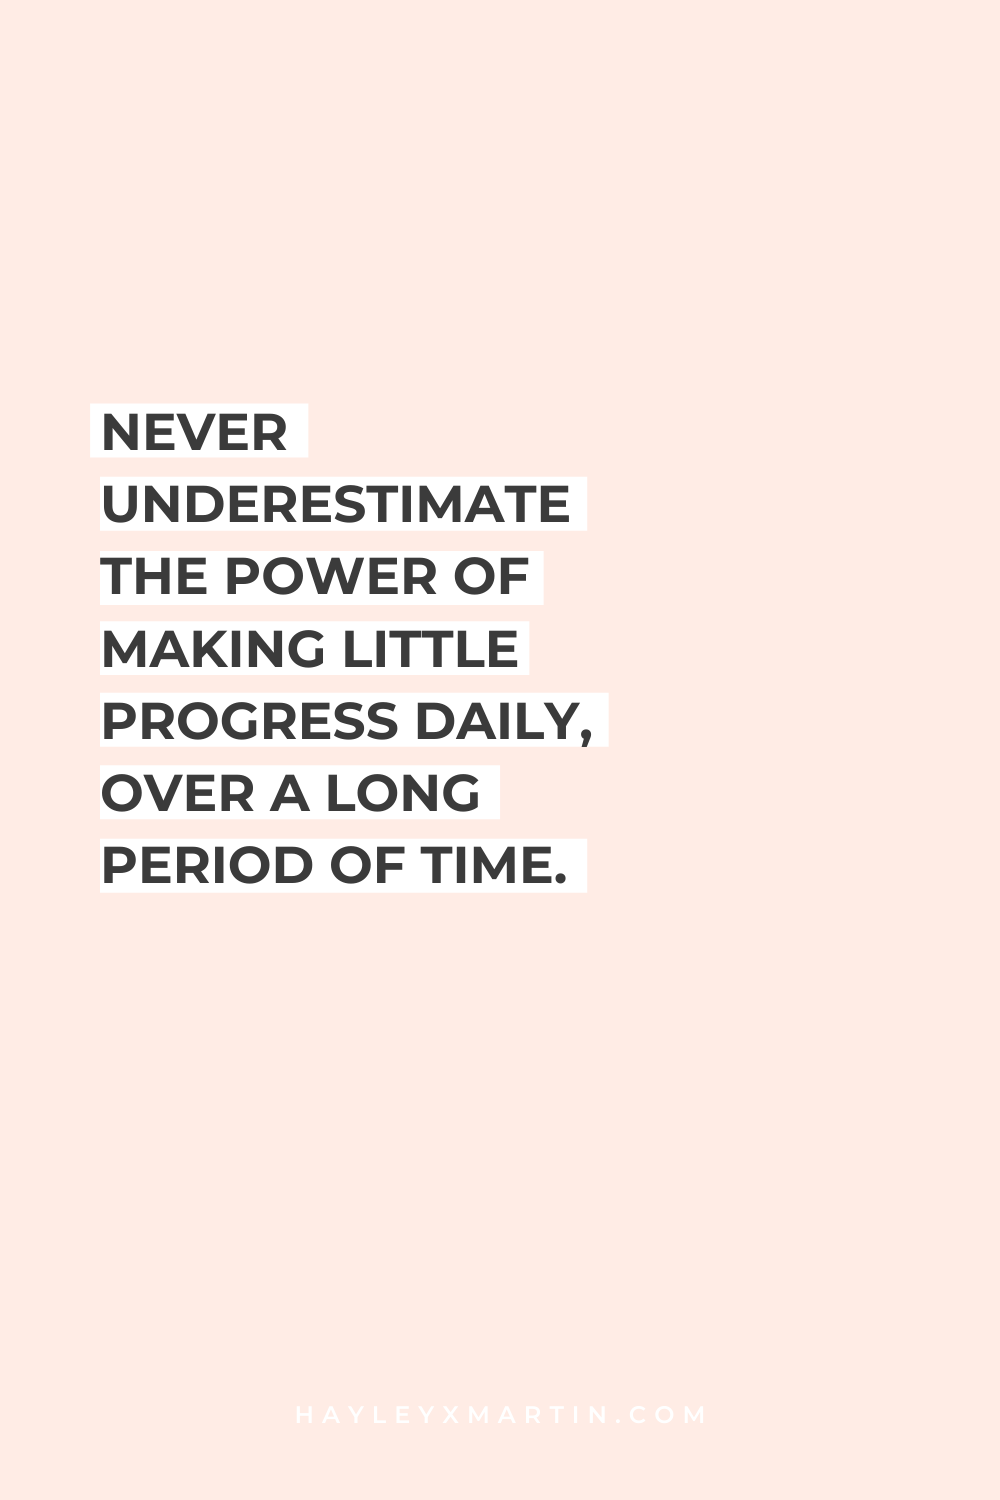 NEVER UNDERESTIMATE THE POWER OF MAKING LITTLE PROGRESS DAILY, OVER A LONG PERIOD OF TIME.